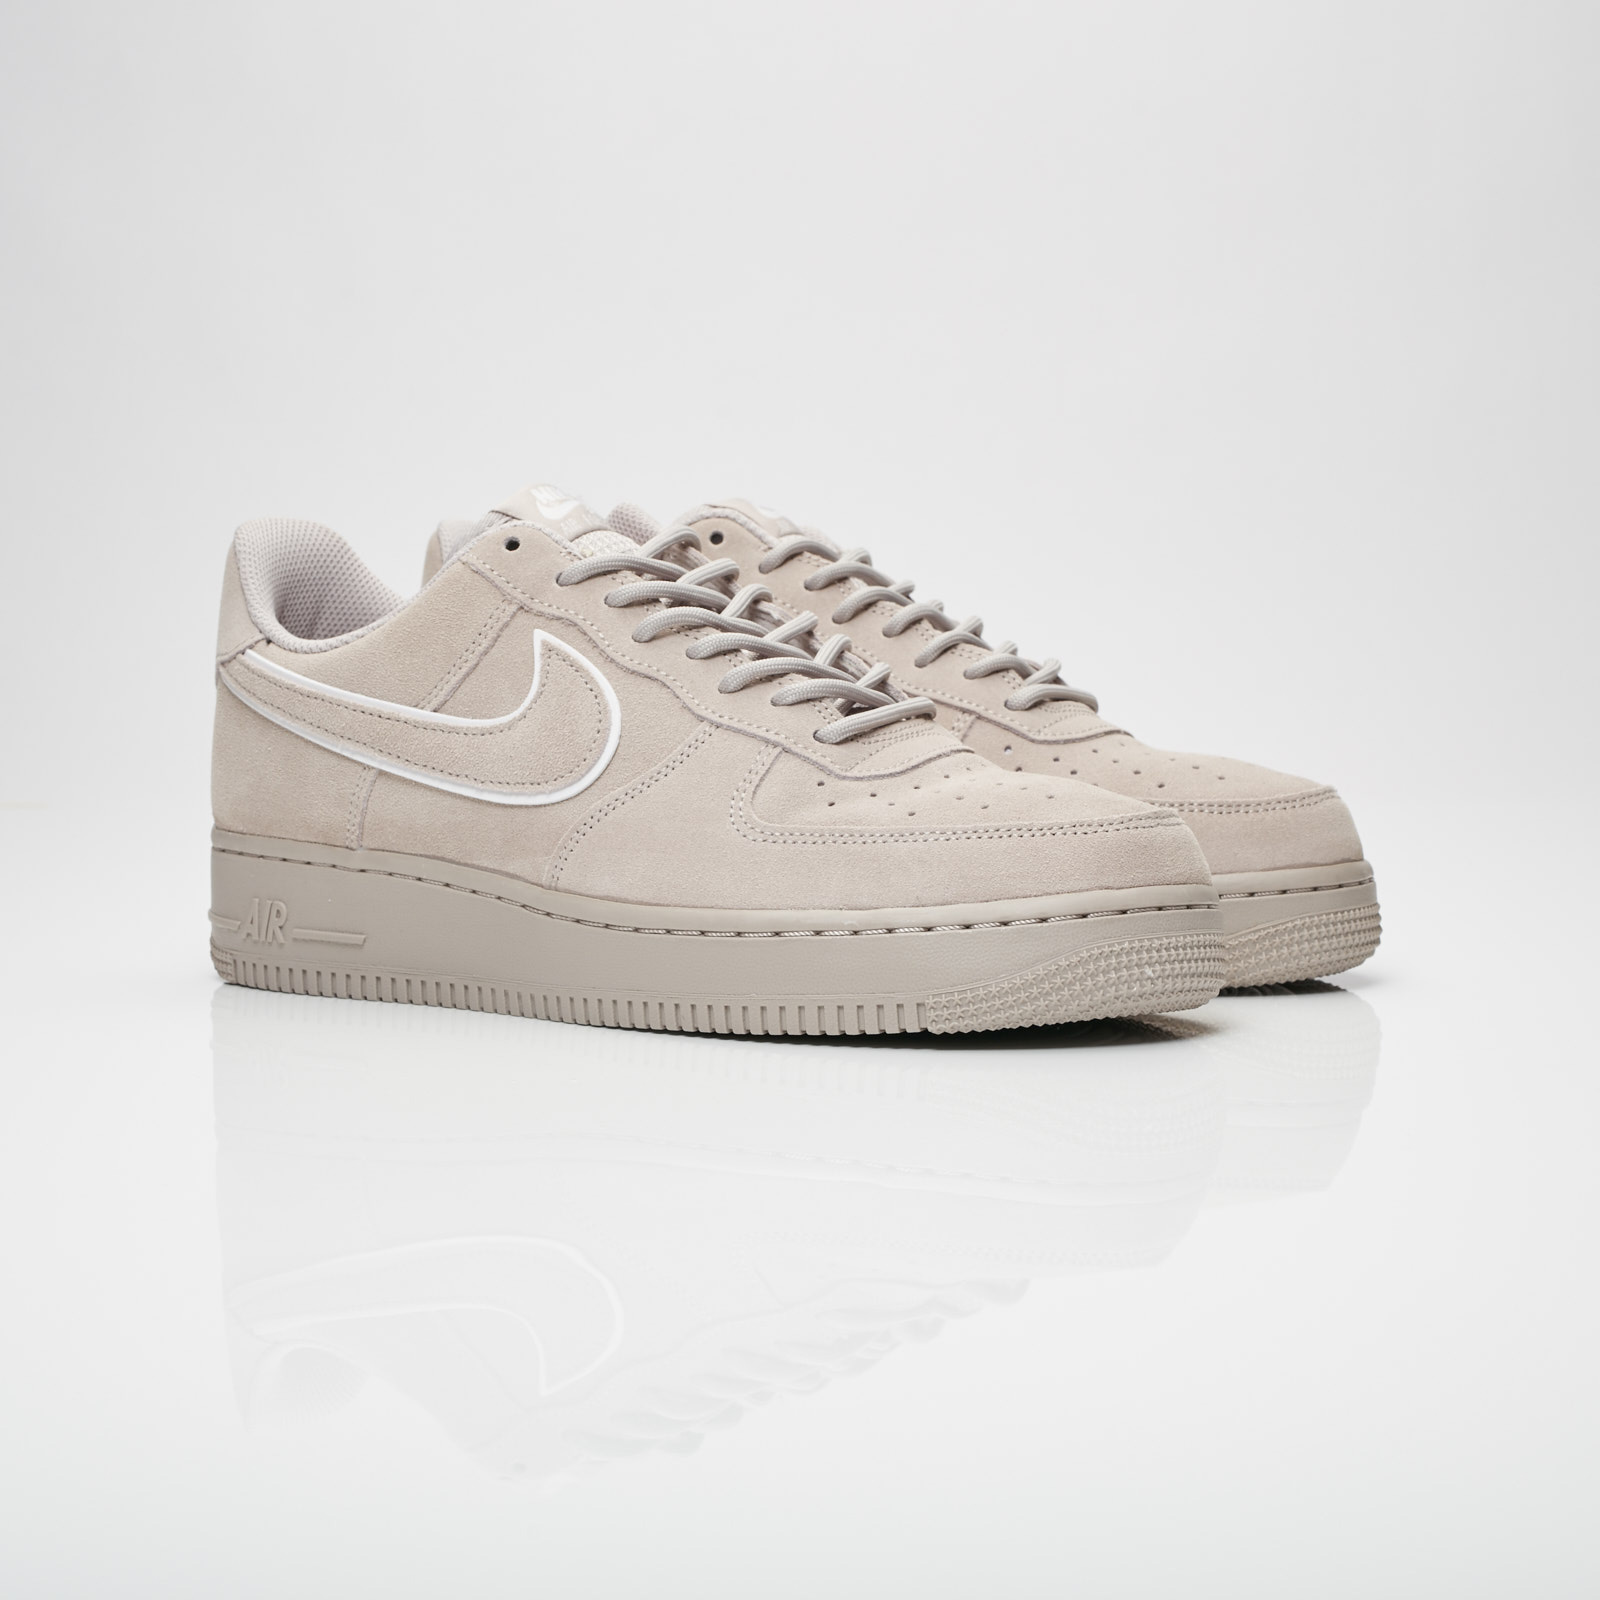 299ca26b4eaf5 Nike Air Force 1 07 lv8 Suede - Aa1117-201 - Sneakersnstuff ...